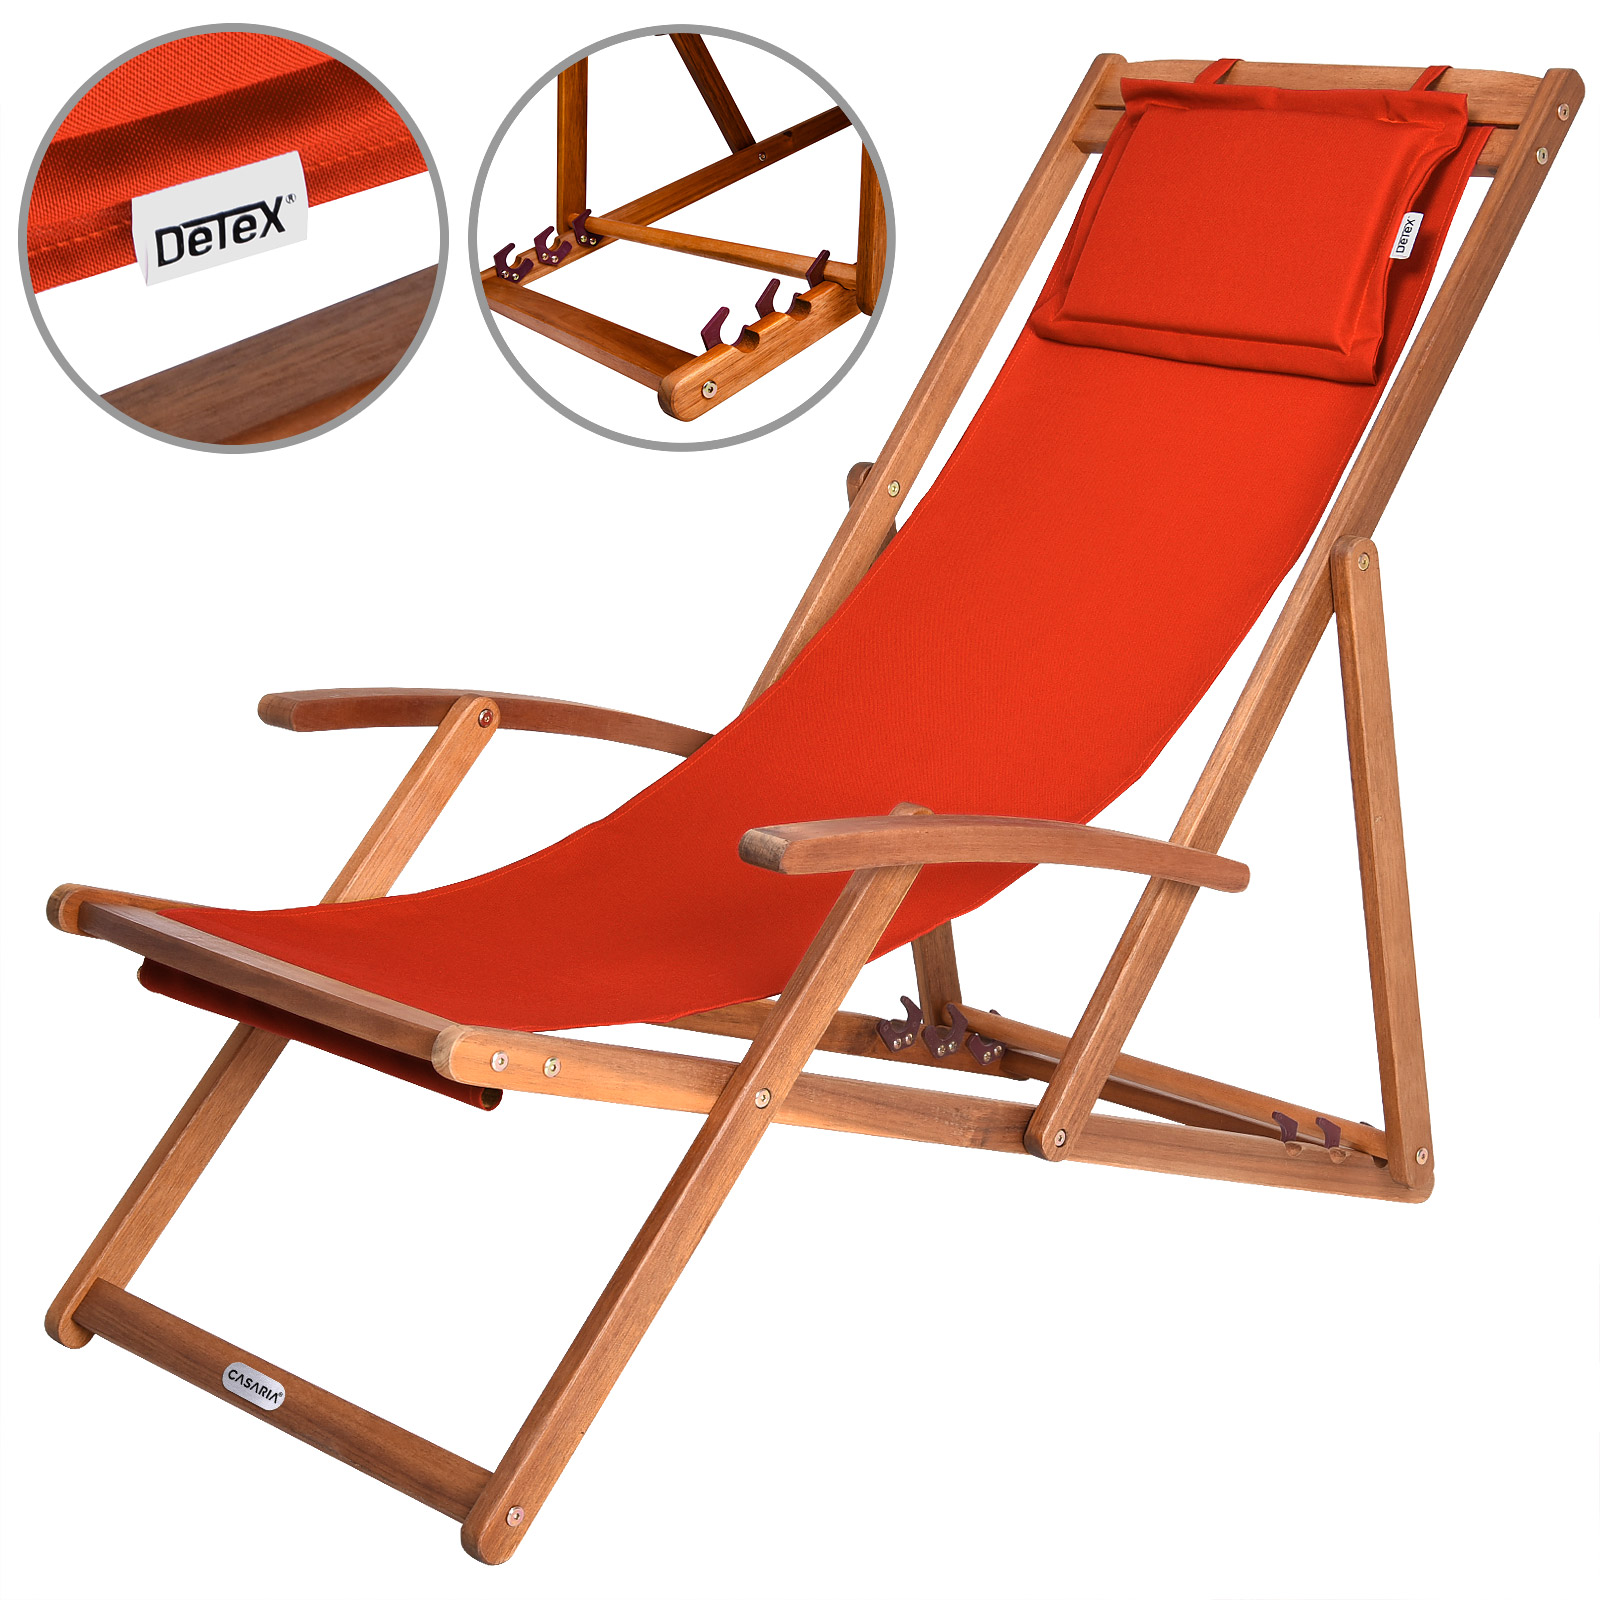 Wooden Folding Deck Chairs Garden Deckchair Furniture Hardwood Cushion Orange